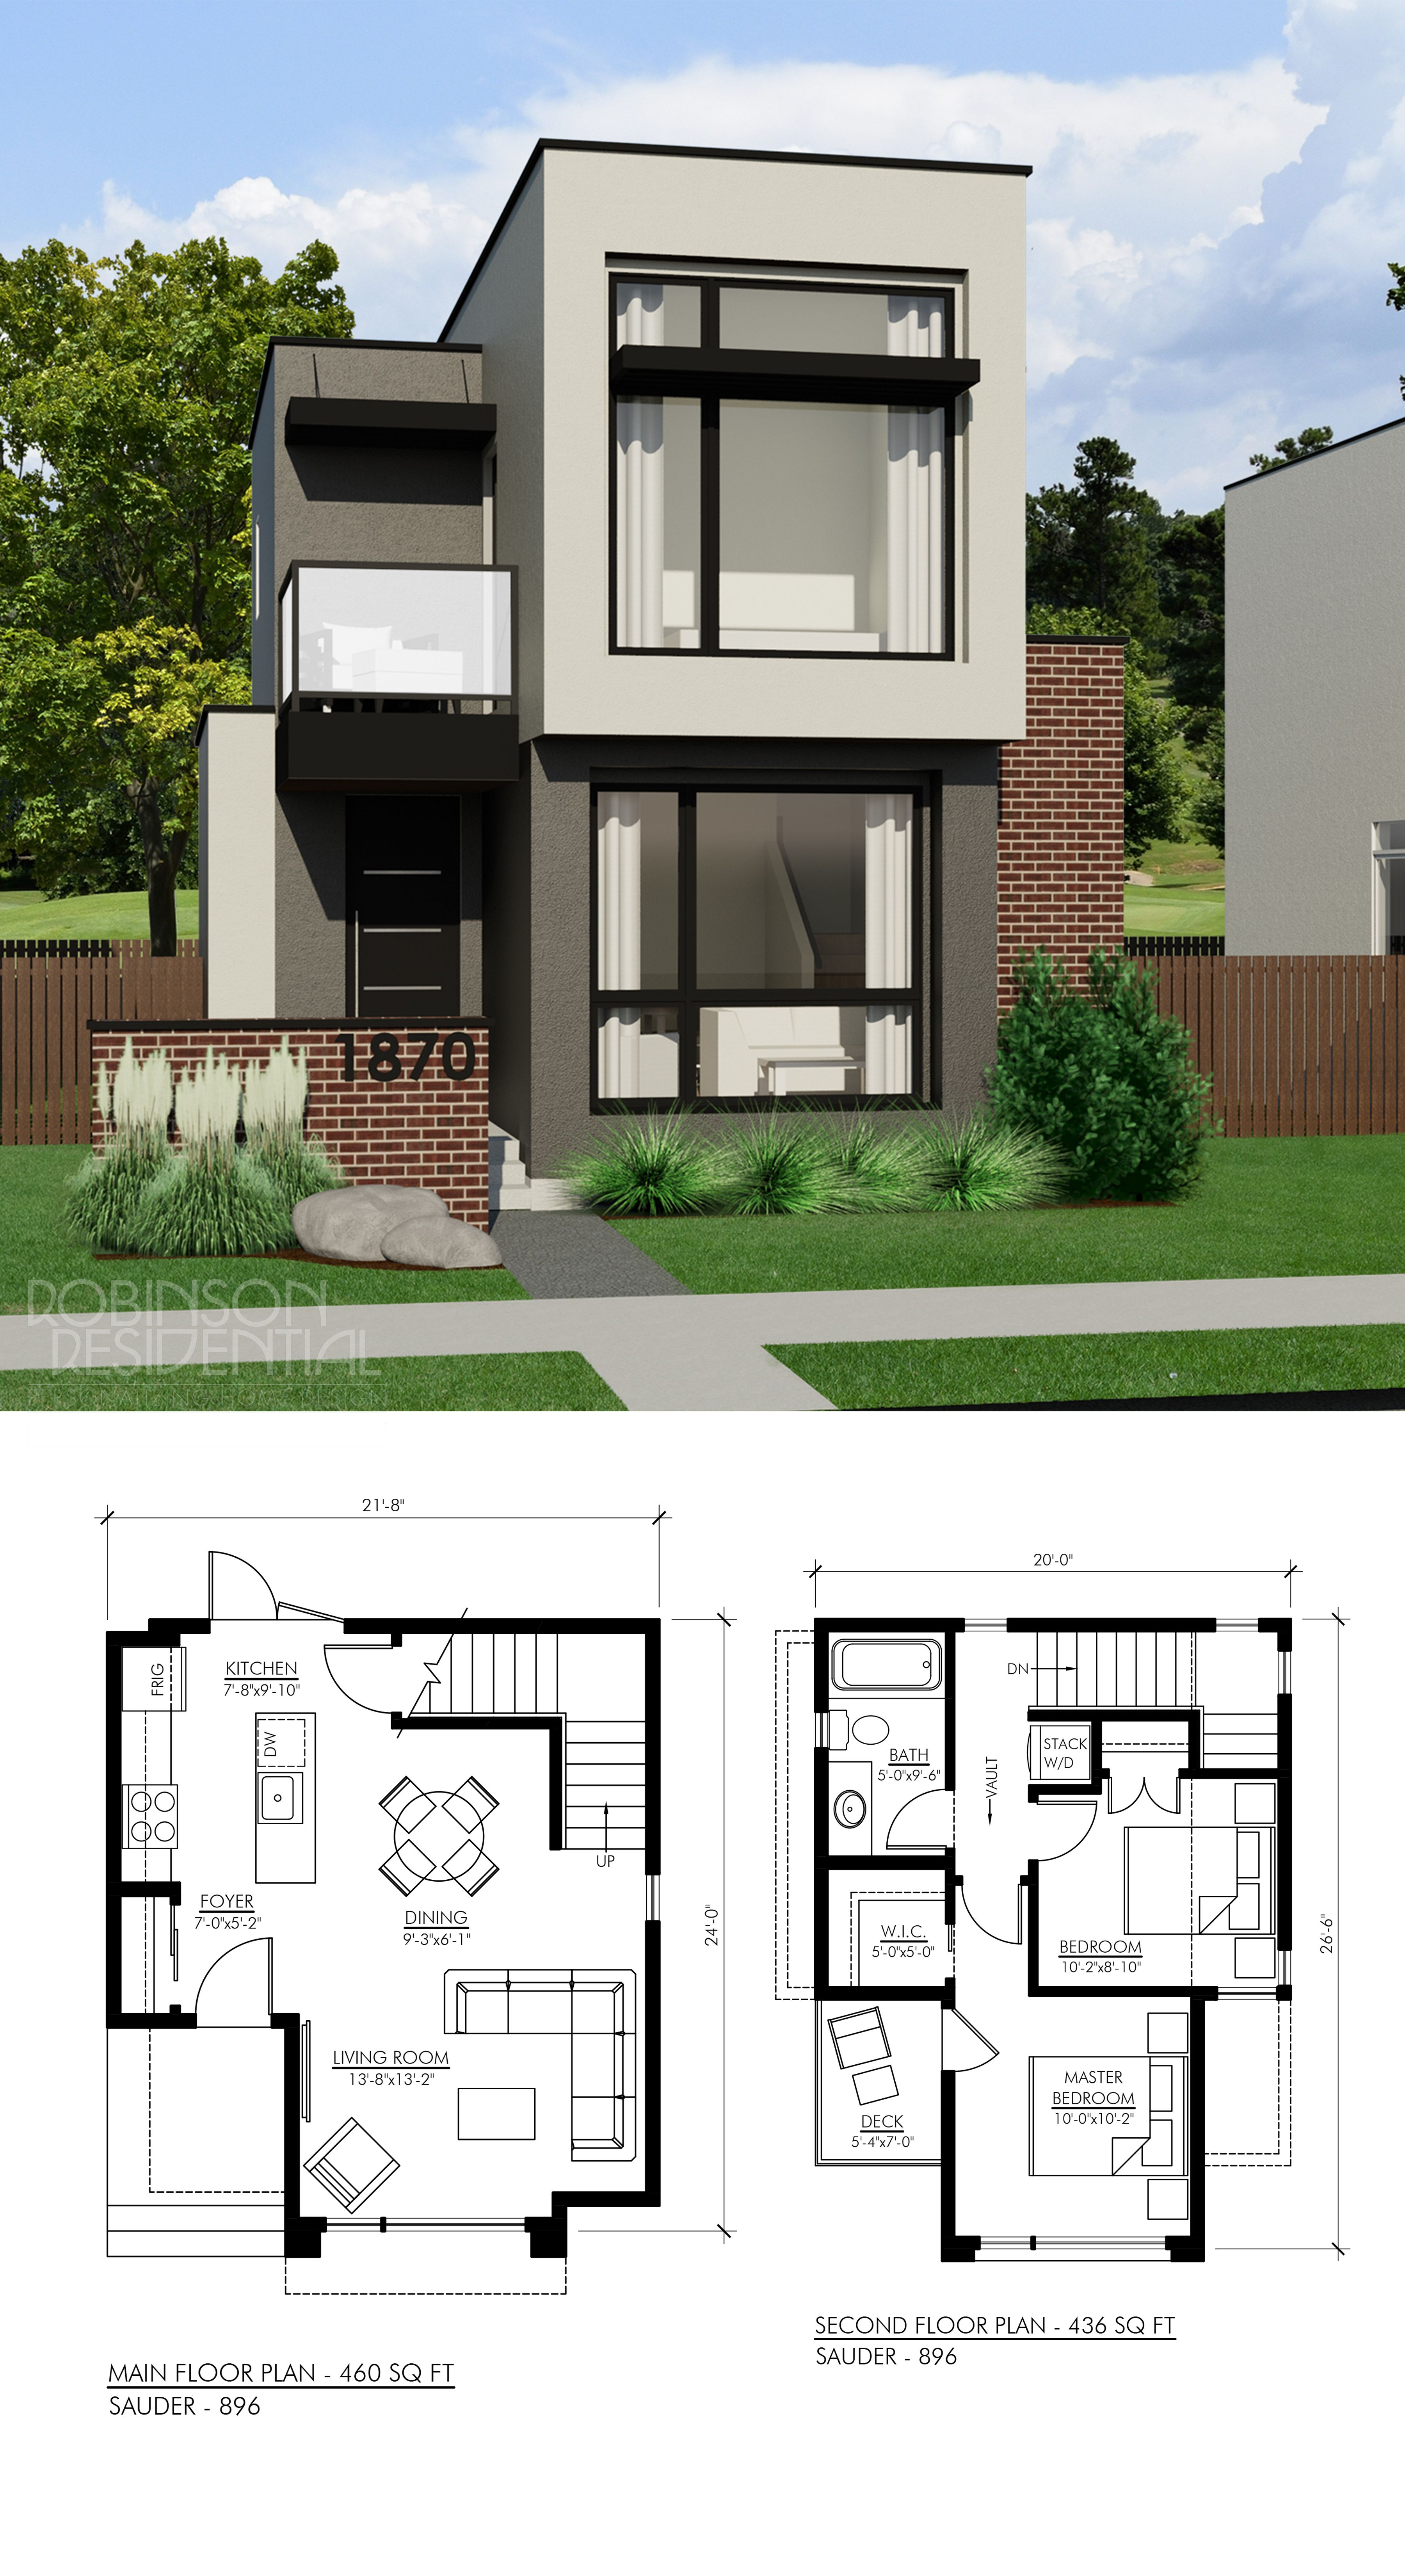 Contemporary Sauder 896 Robinson Plans Small House Design House Plans Minimalist House Design